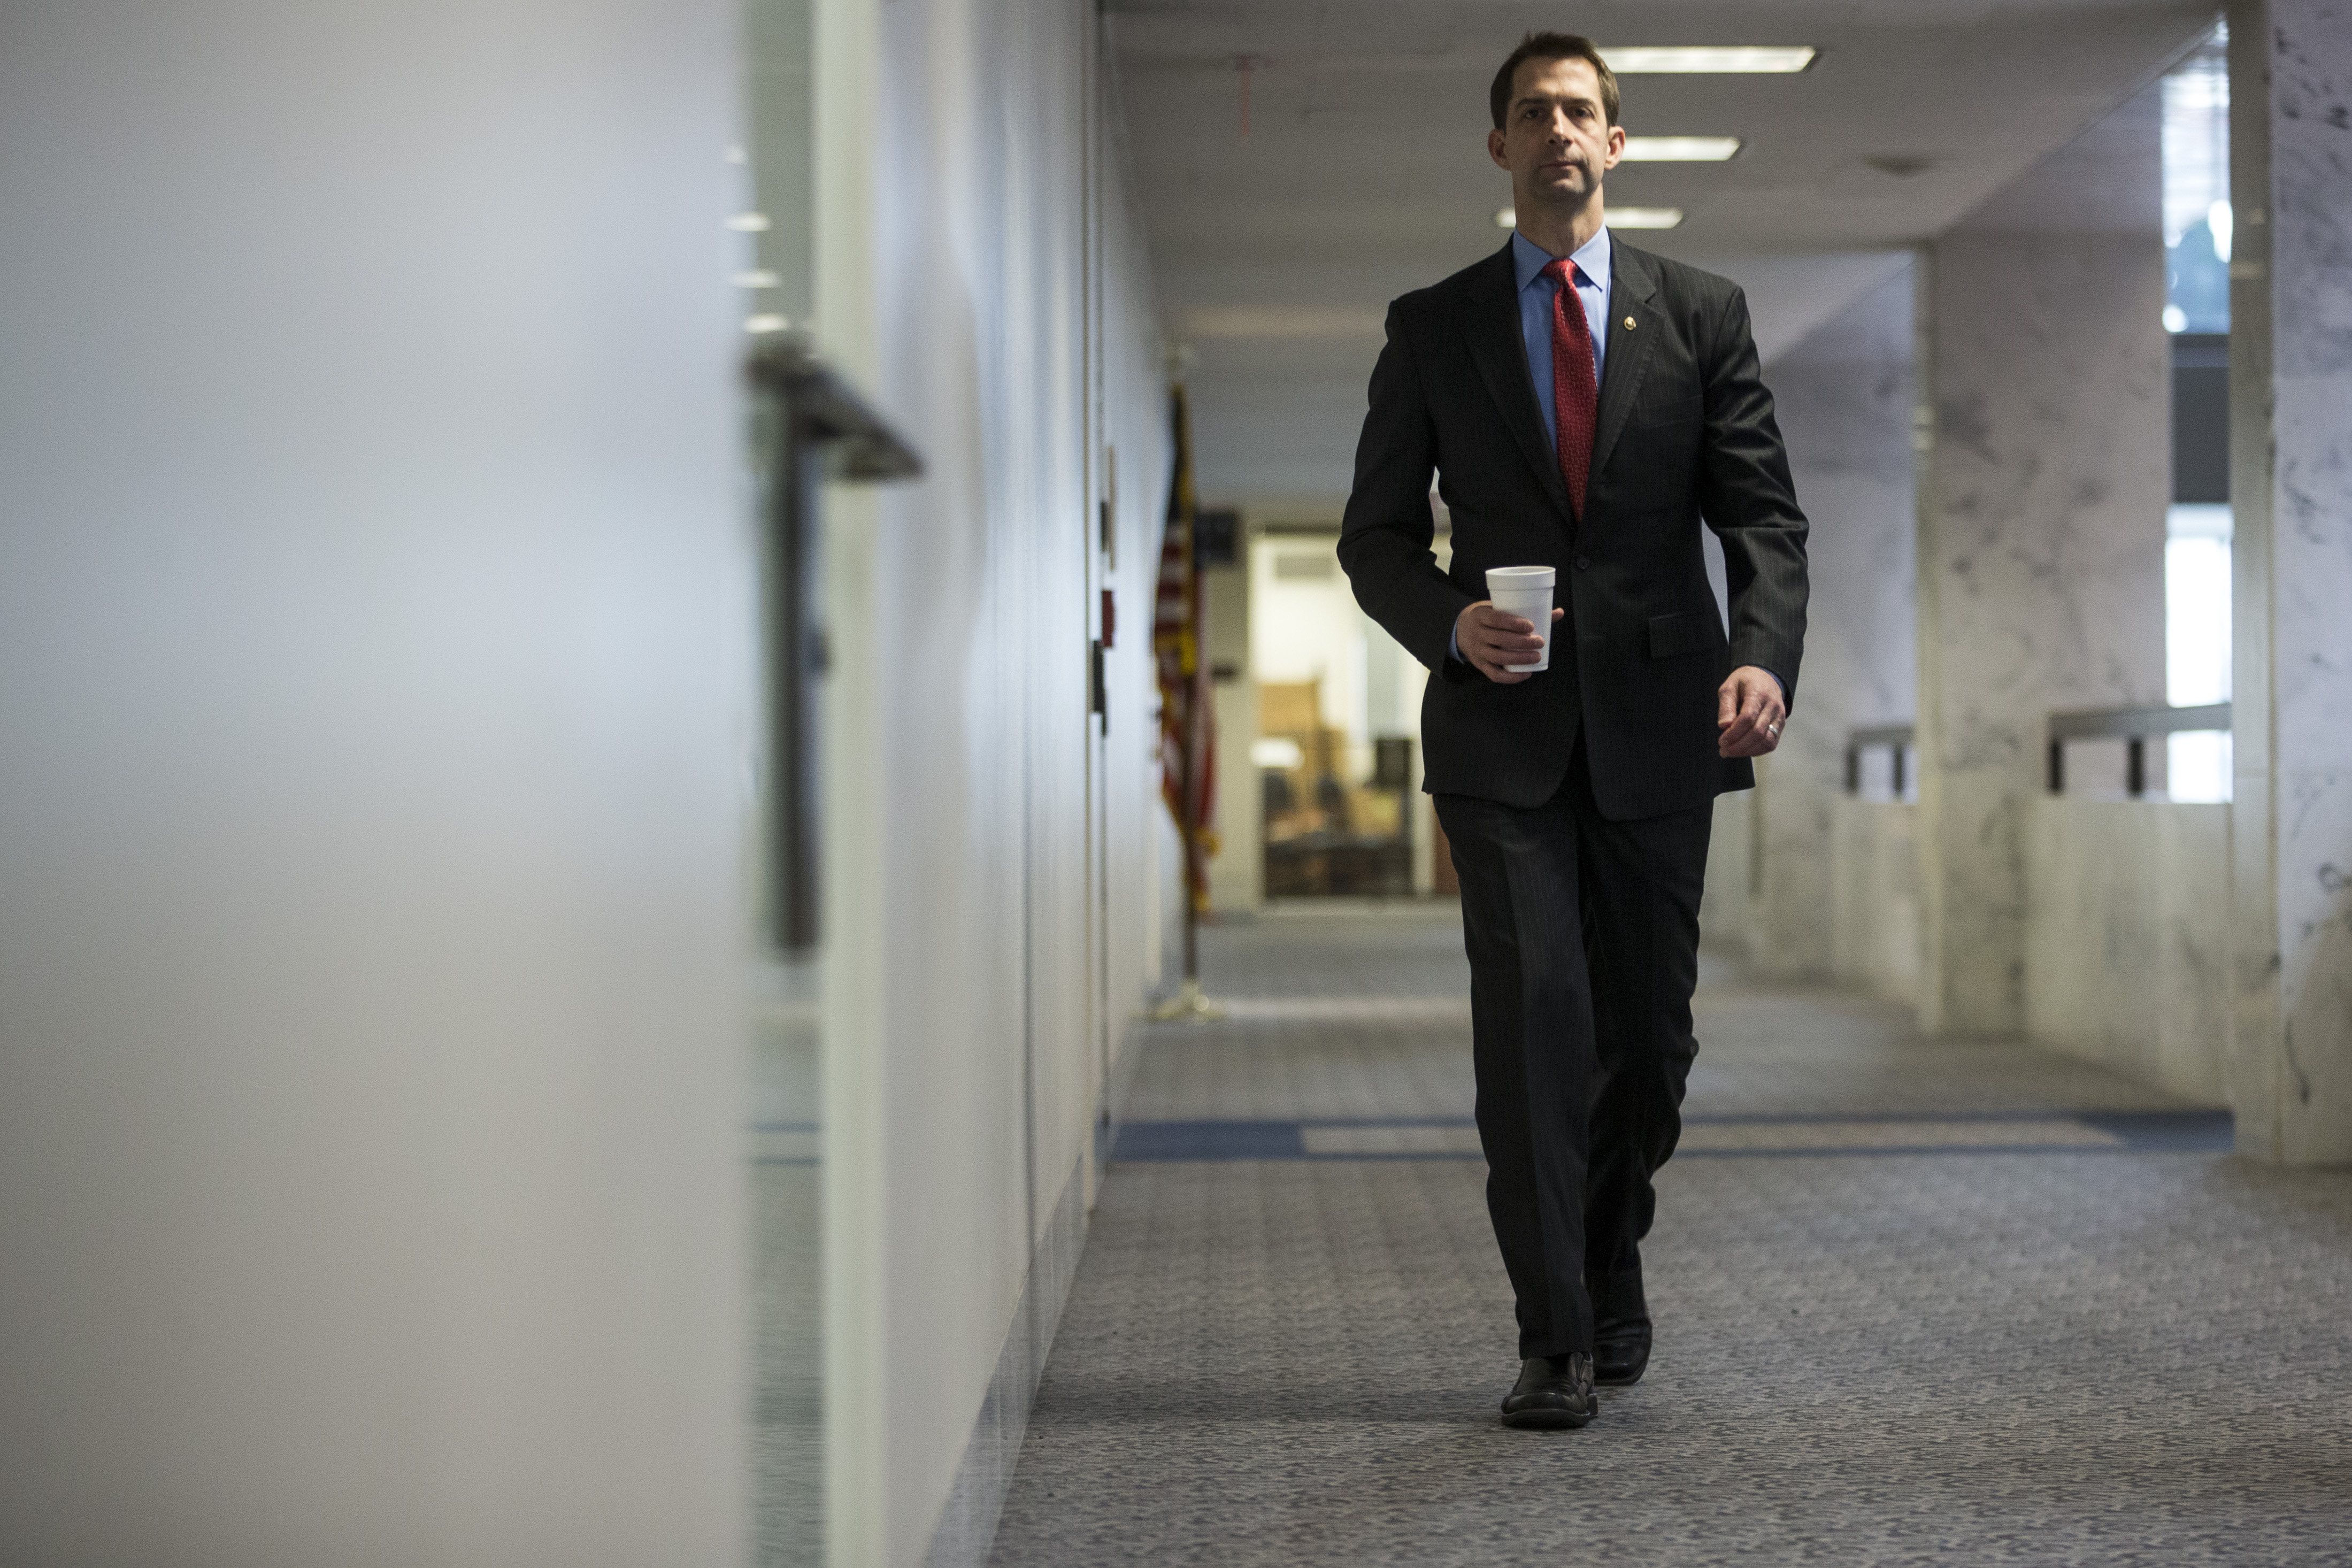 Sen. Tom Cotton walks to a closed briefing on intelligence matters on Capitol Hill on December 4, 2018 in Washington, DC. (Photo by Zach Gibson/Getty Images)